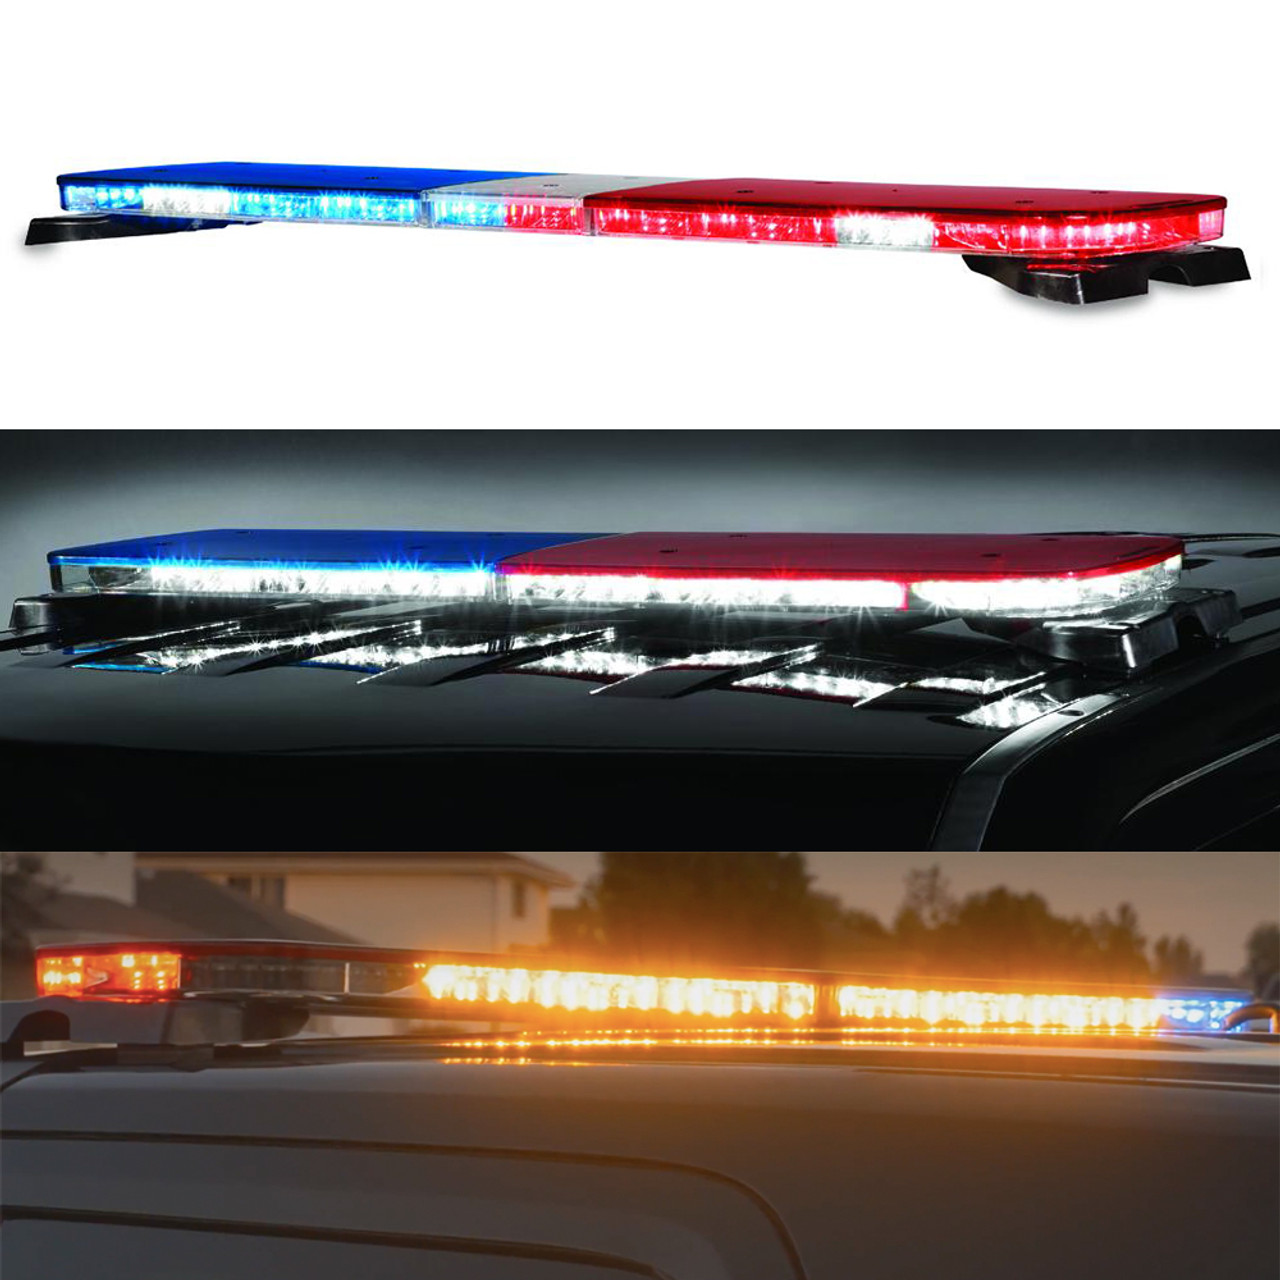 medium resolution of federal signal allegiant light bar 45 or 53 inch model dual color light bar